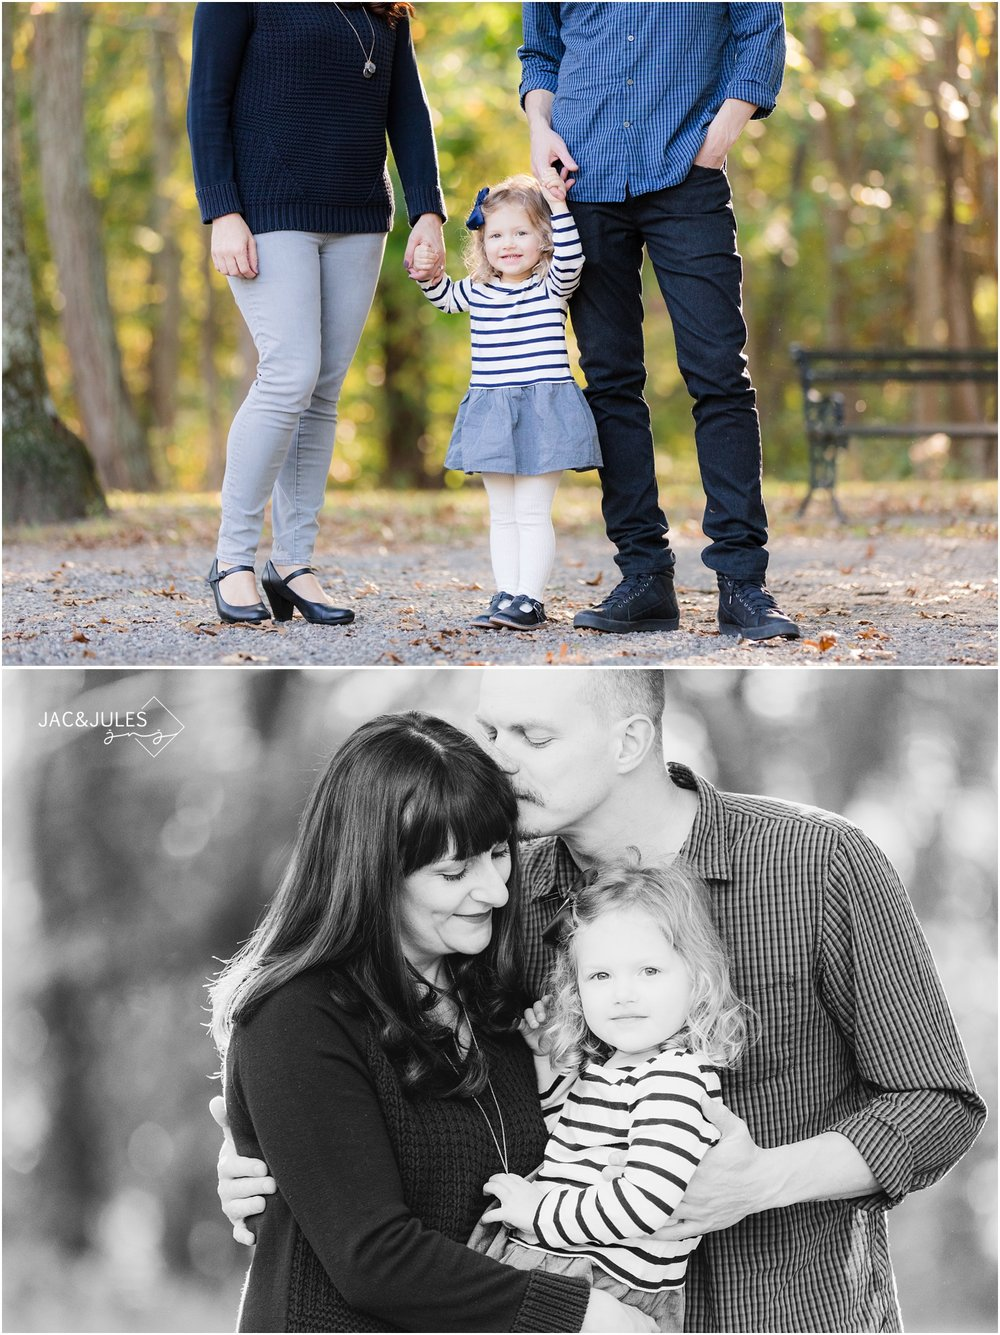 Intimate fall family photos at Allaire State Park in Wall, NJ.